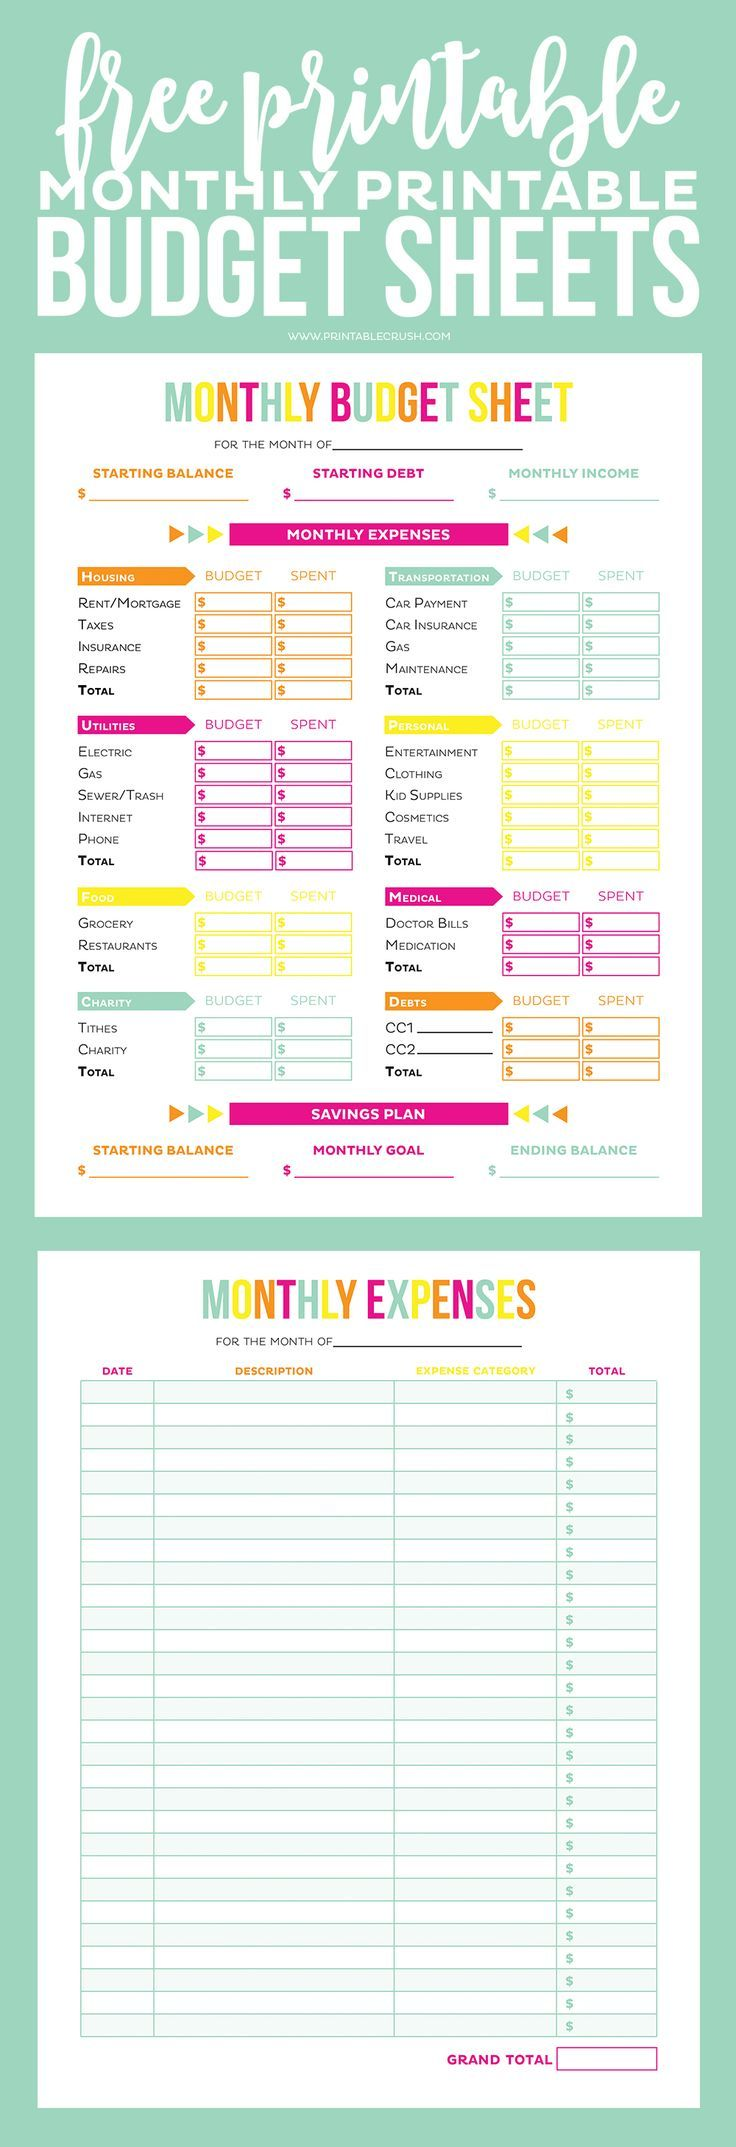 Worksheets Budgeting Worksheets best 25 printable budget sheets ideas on pinterest monthly get your finances in order with these free includes and